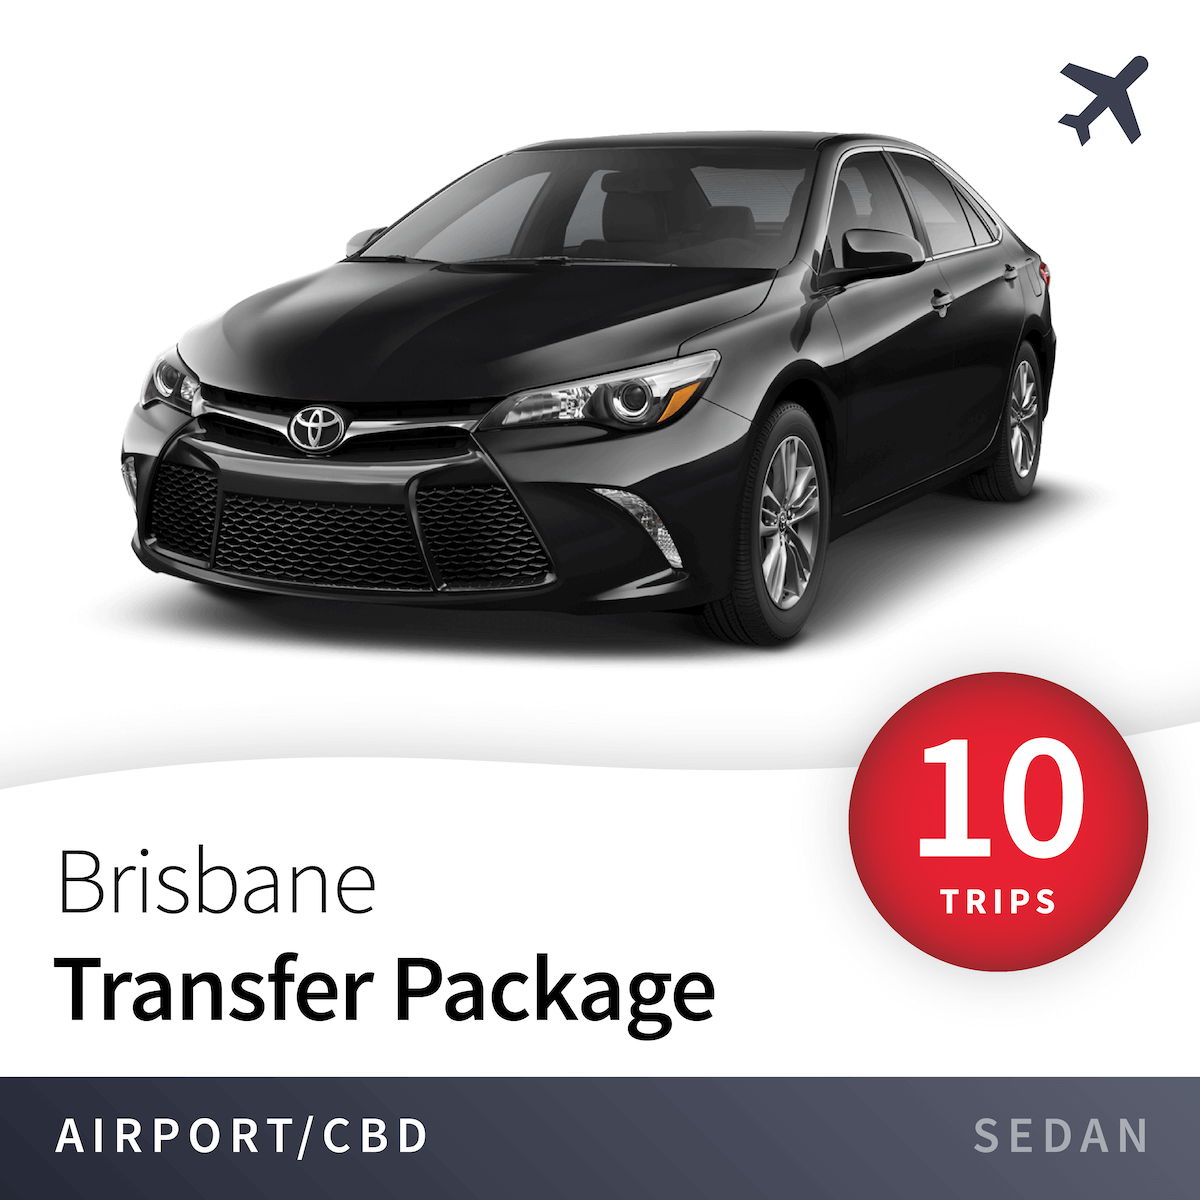 Brisbane Airport Transfer Package - Sedan (10 Trips) 10